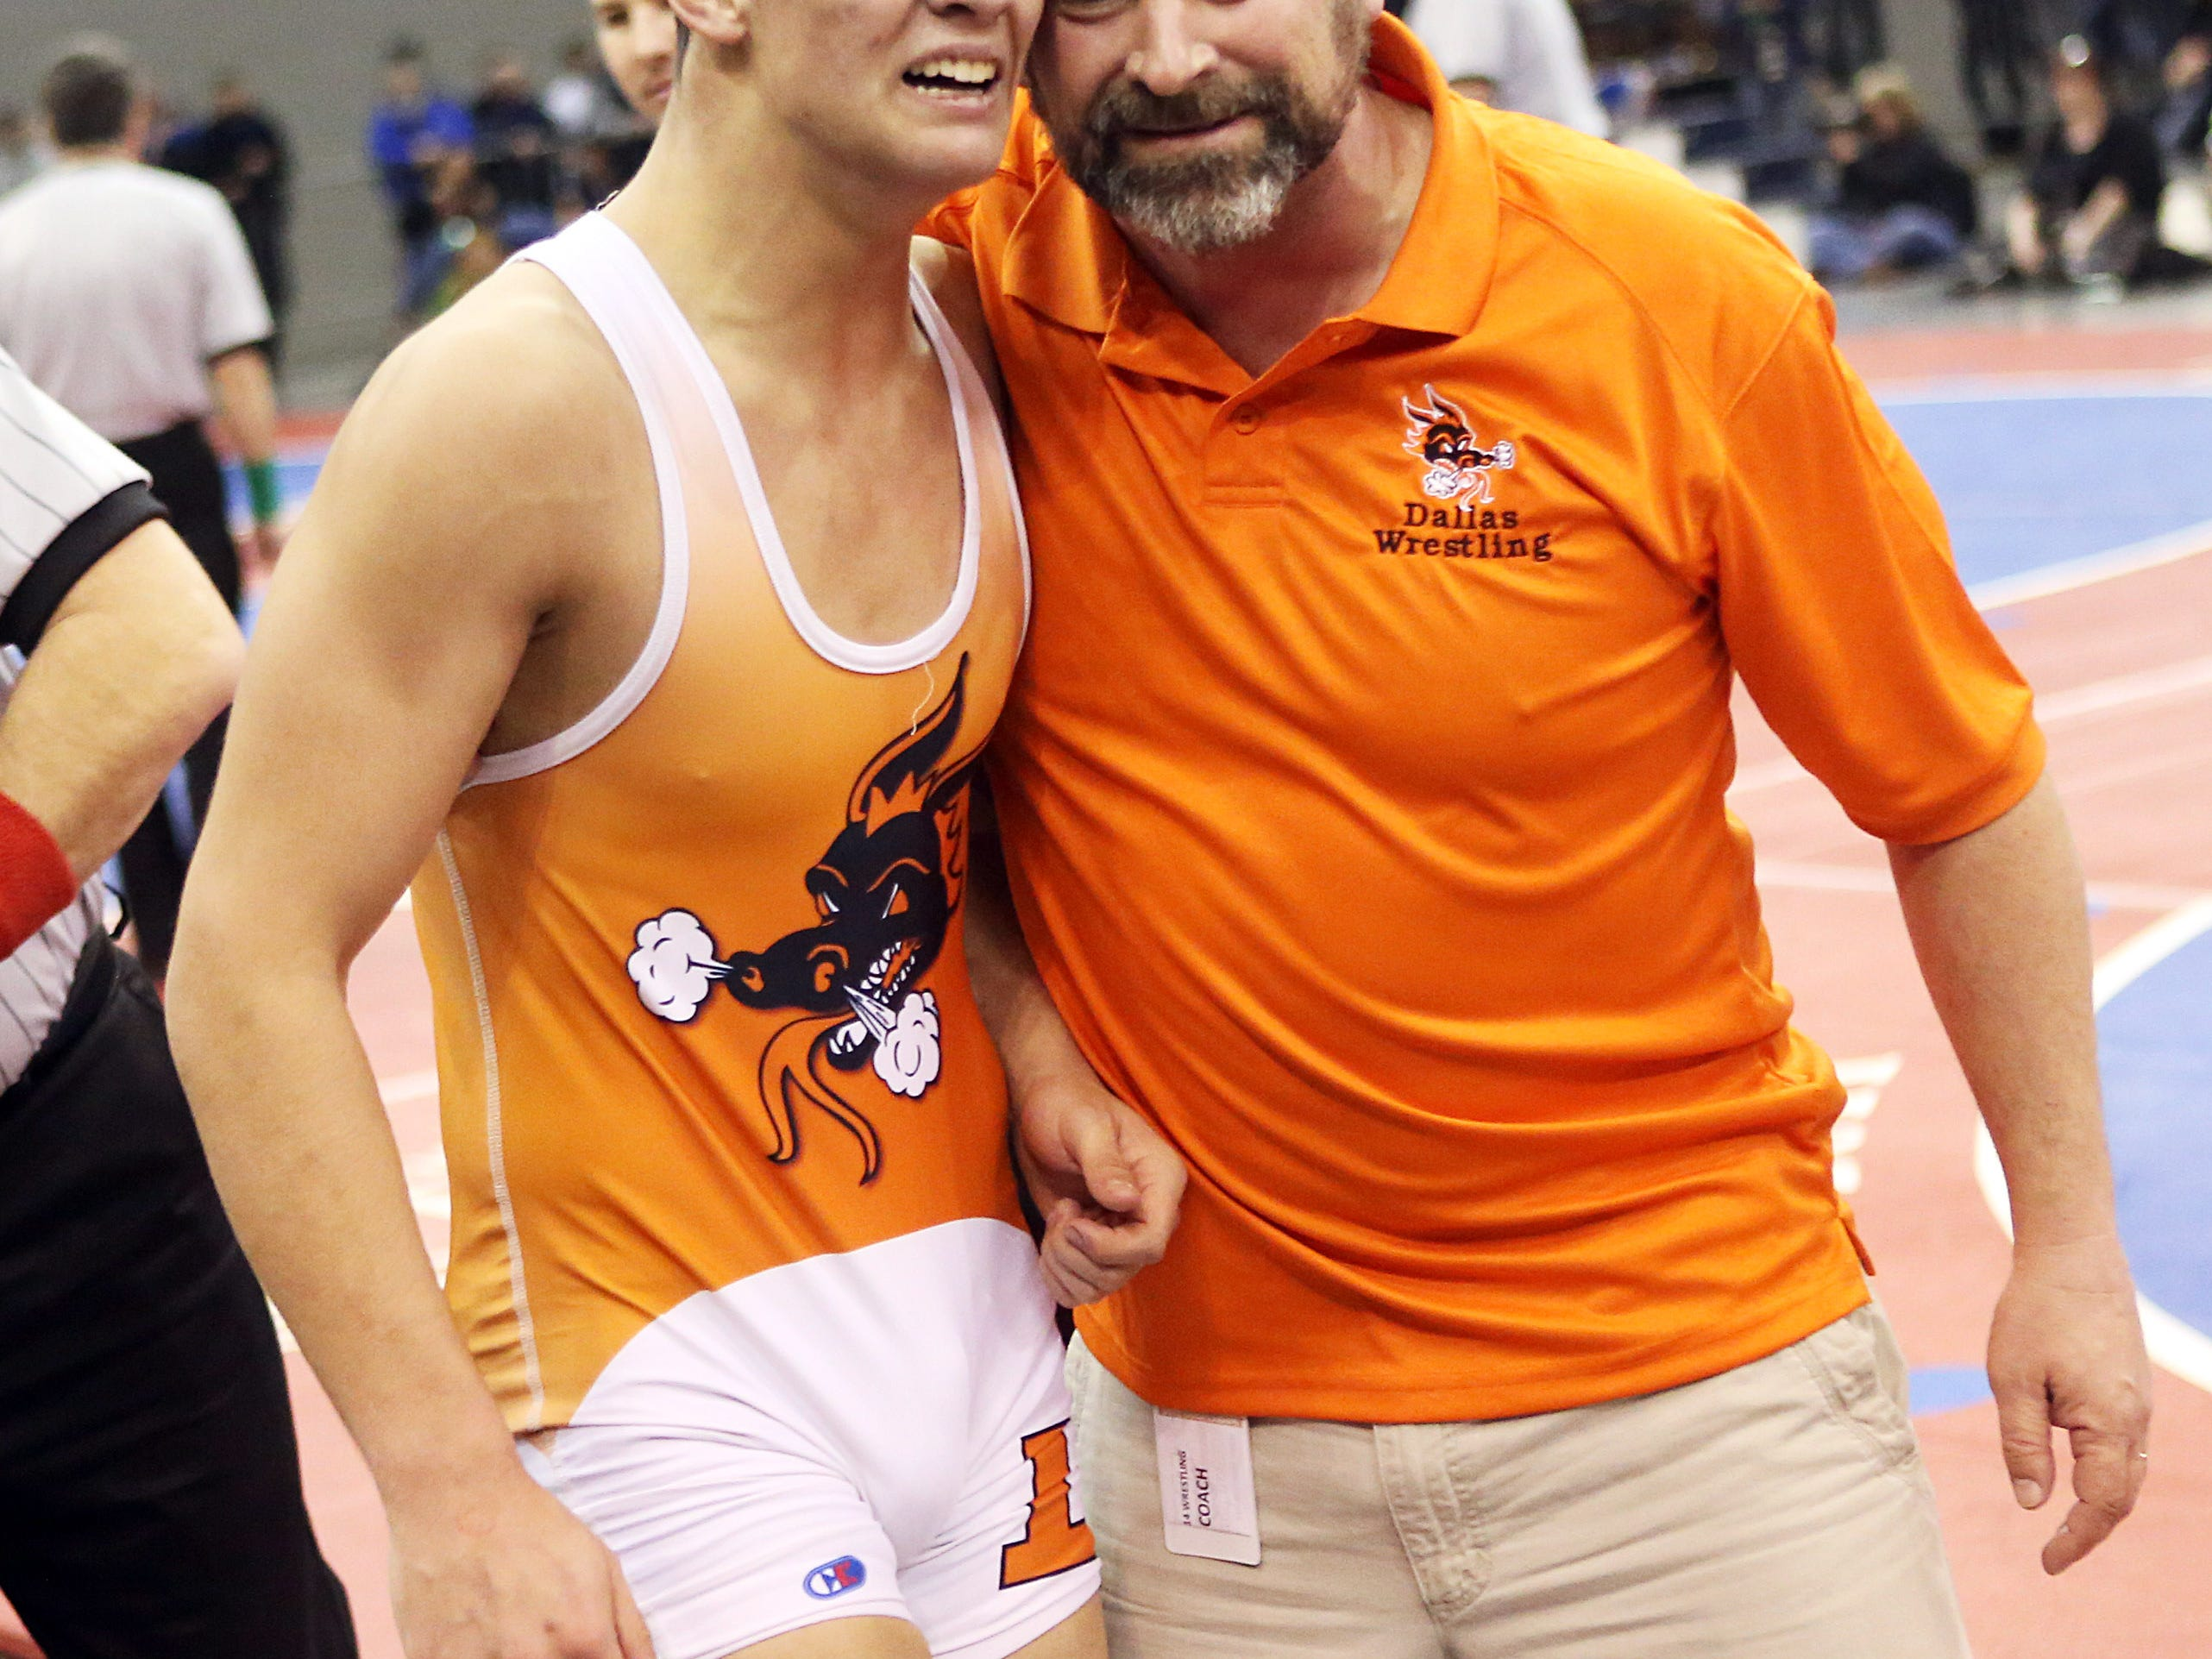 Dallas coach Tony Olliff (right) hugs Dallas' Ryan Spencer after his Spencer won the 2014 state championship.